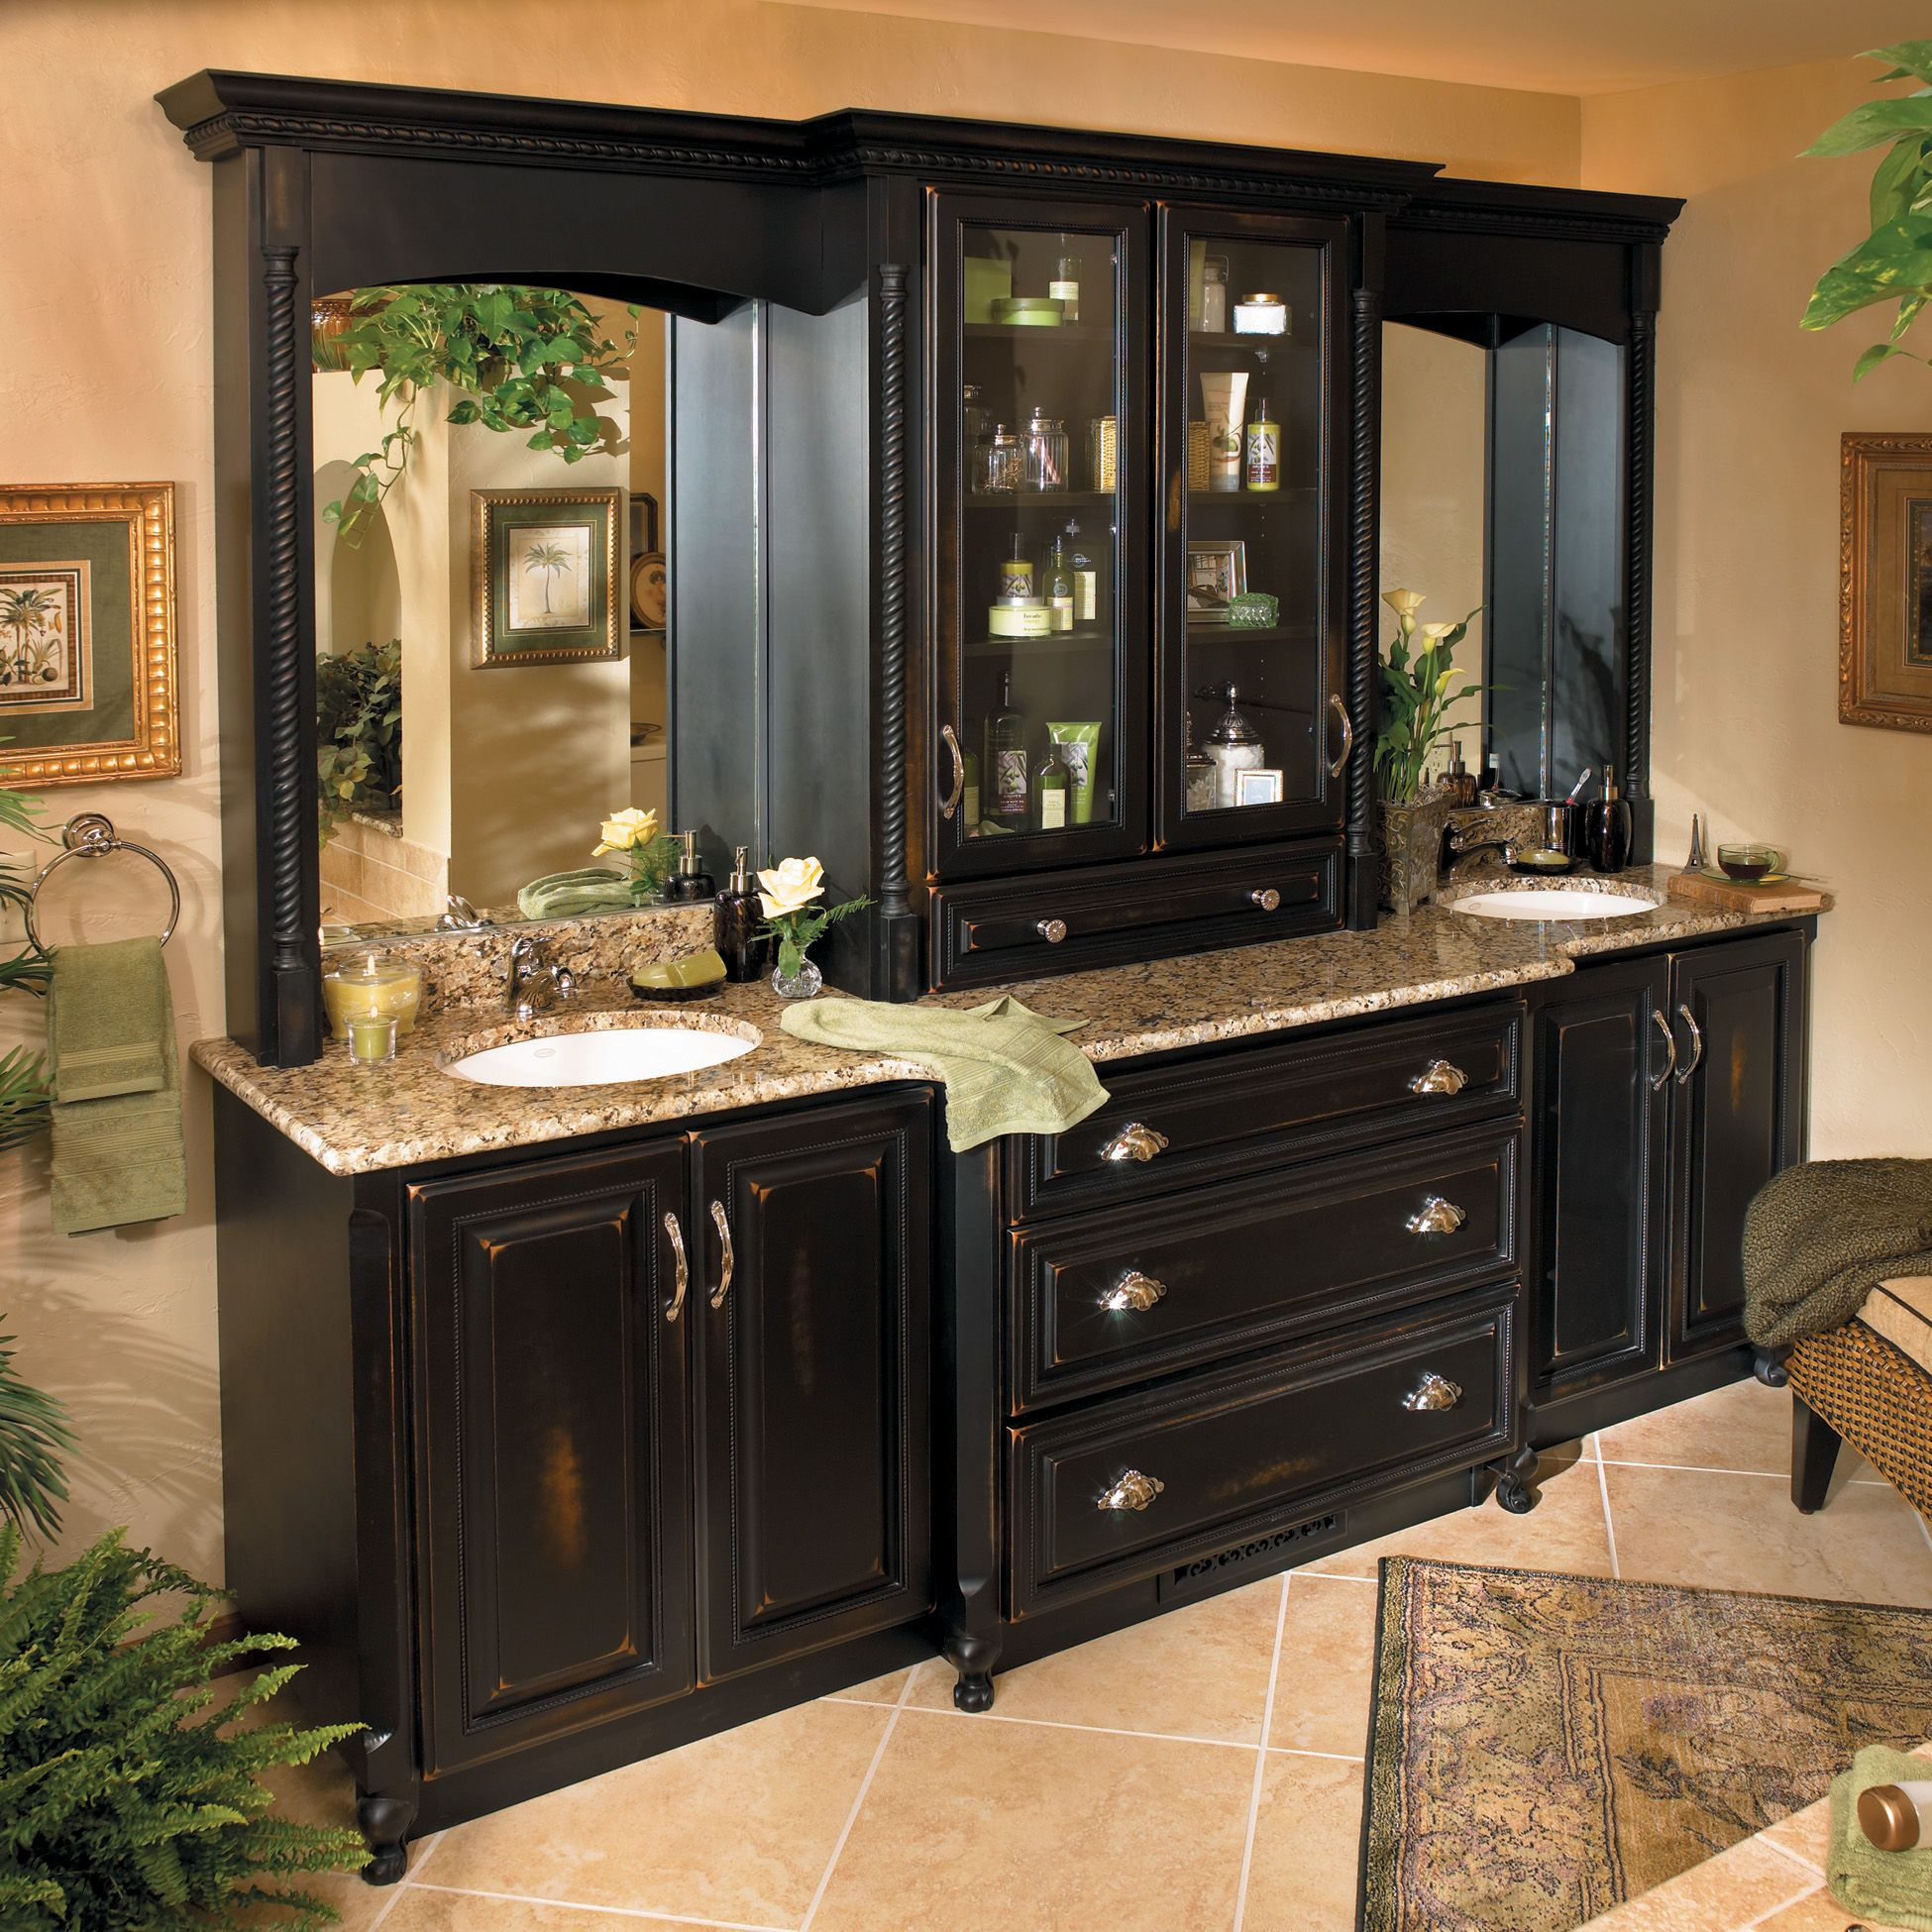 Stylish Master Bath Vanity Wow This Is Really Pretty Would